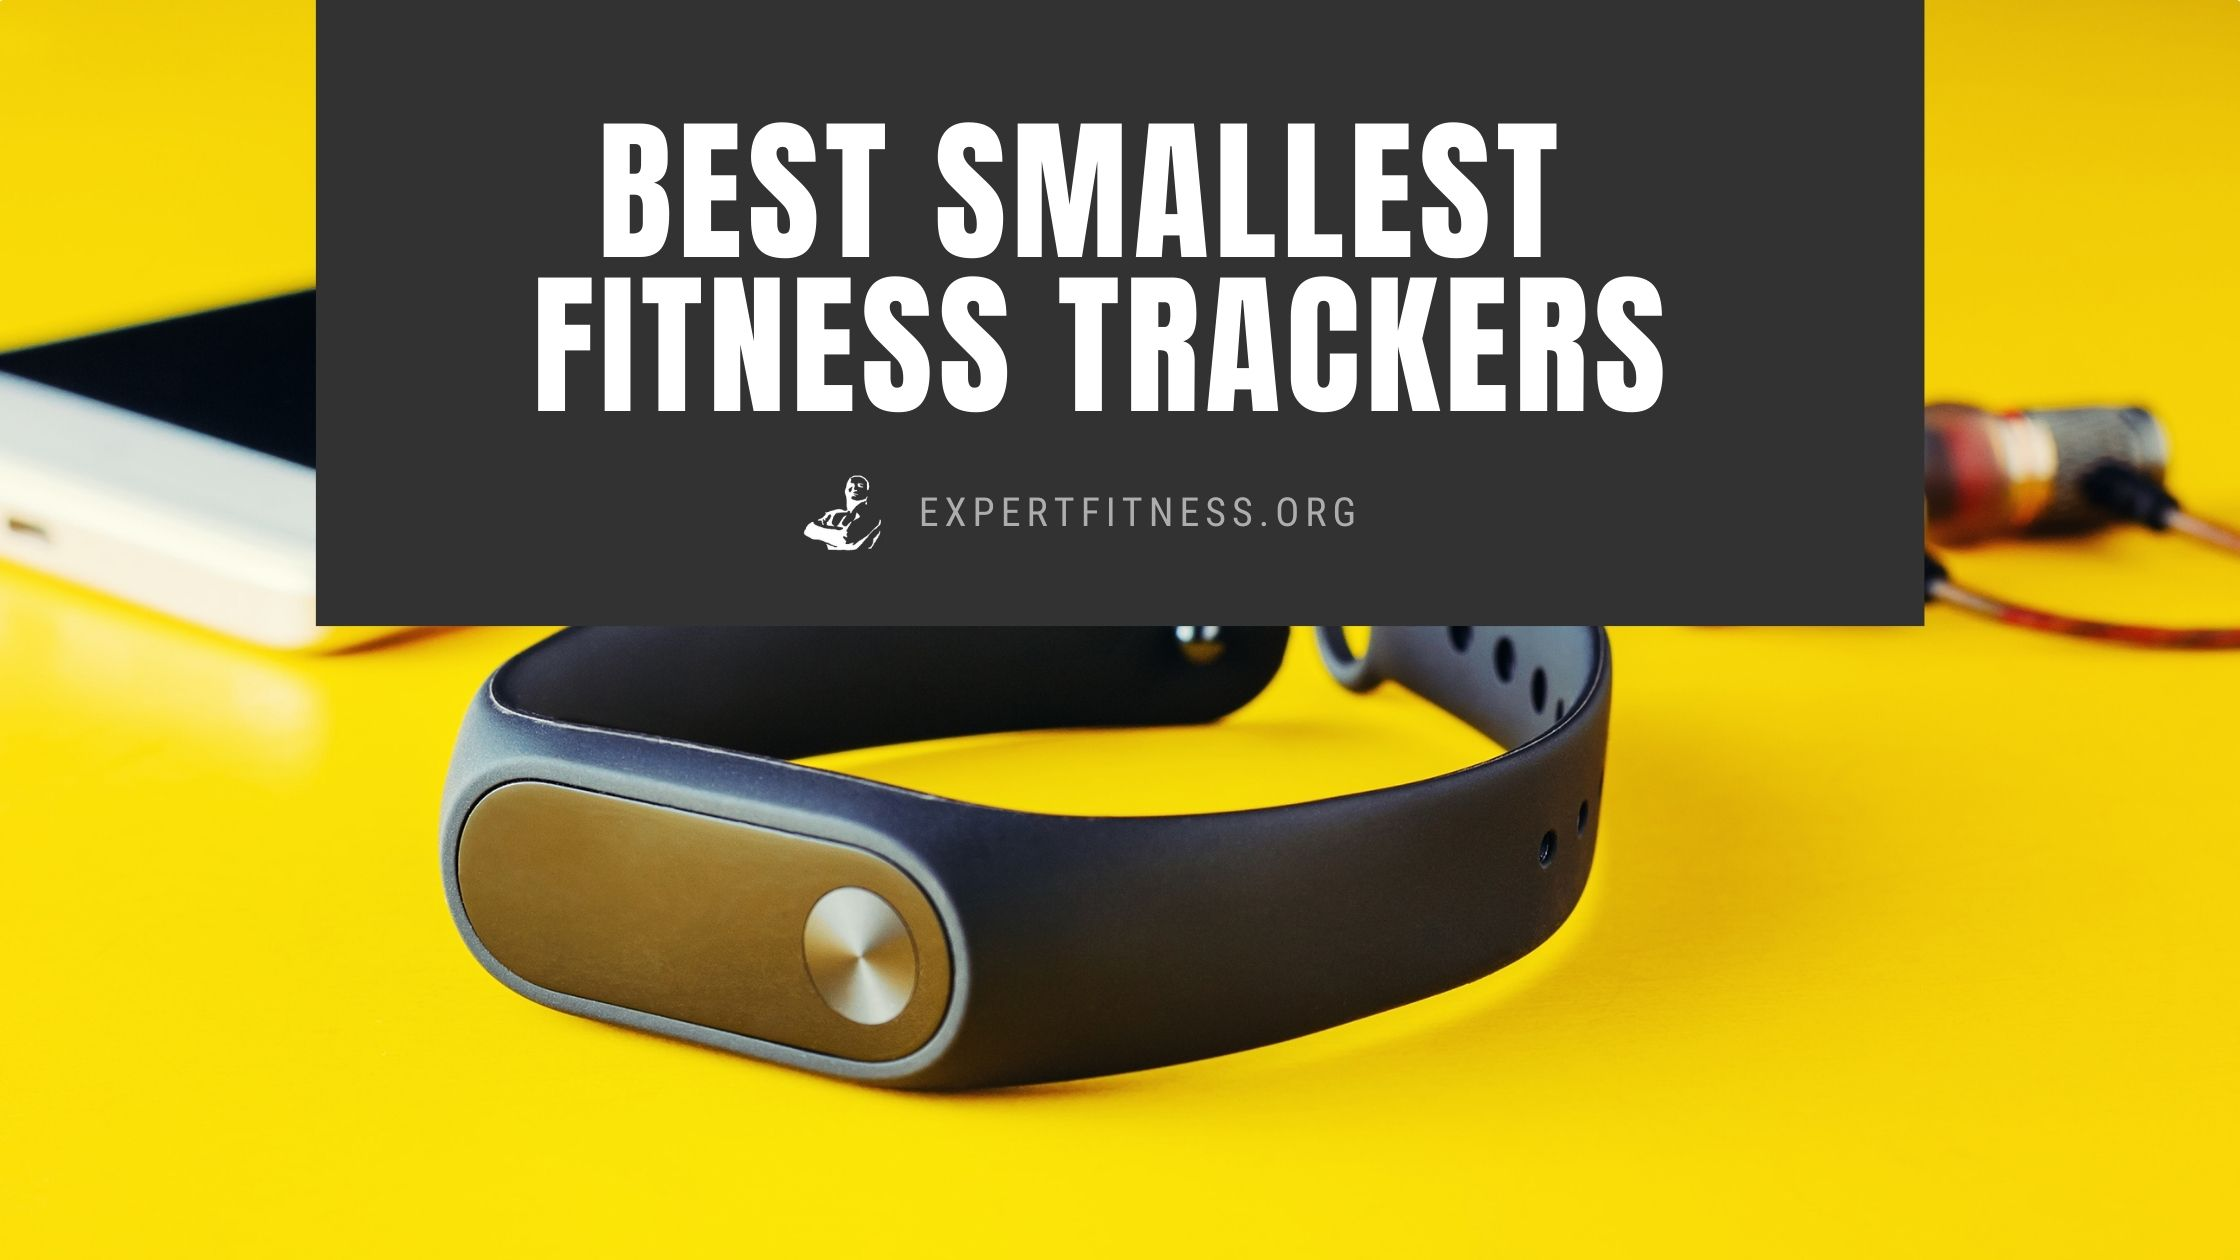 best smallest fitness trackers